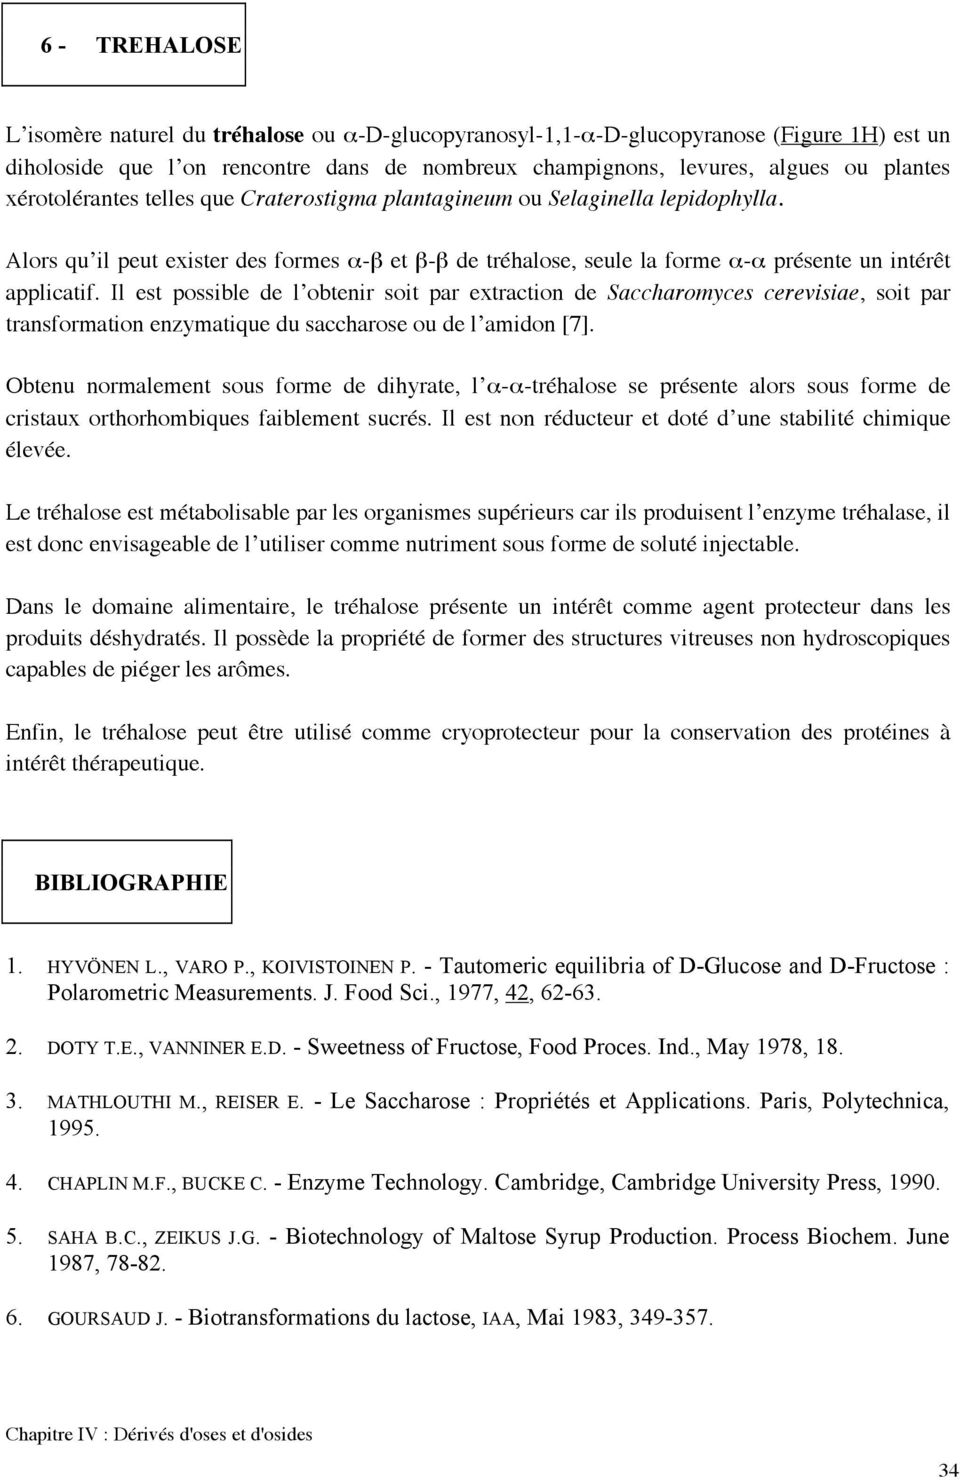 Il est possible de l obtenir soit par extraction de Saccharomyces cerevisiae, soit par transformation enzymatique du saccharose ou de l amidon [7].